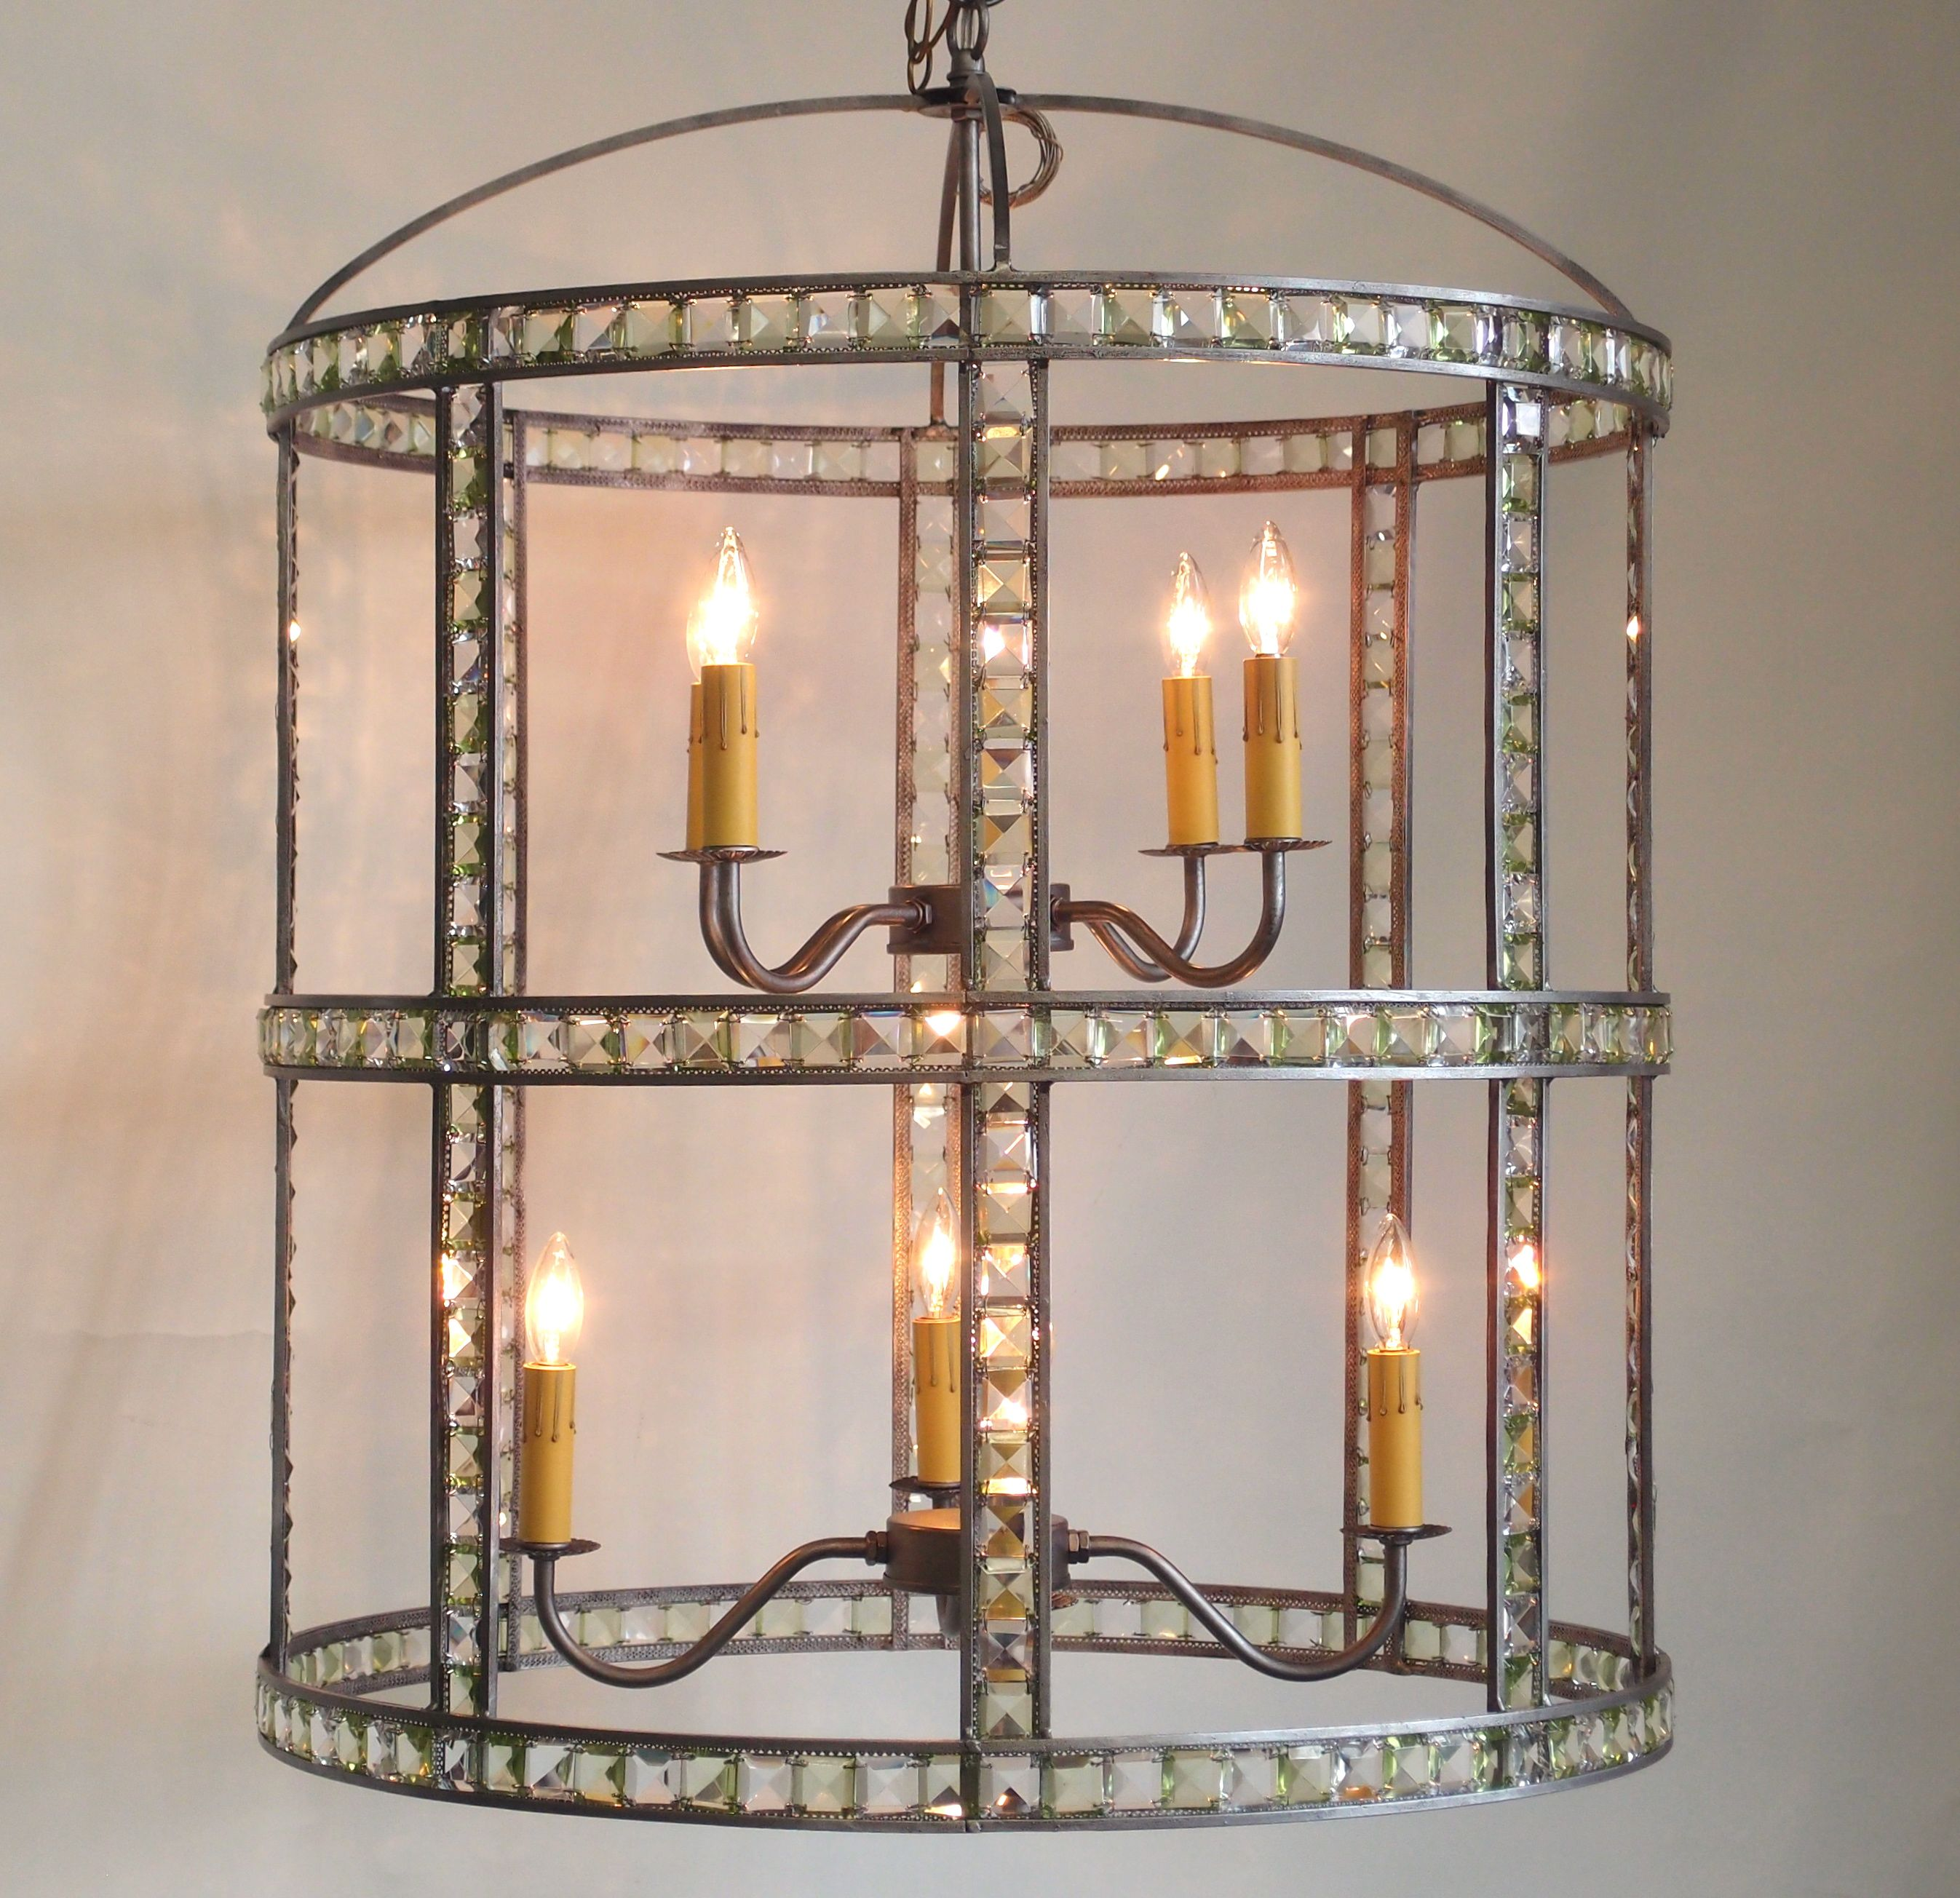 Custom Chandelier made by Canopy Designs for Theodore's ...